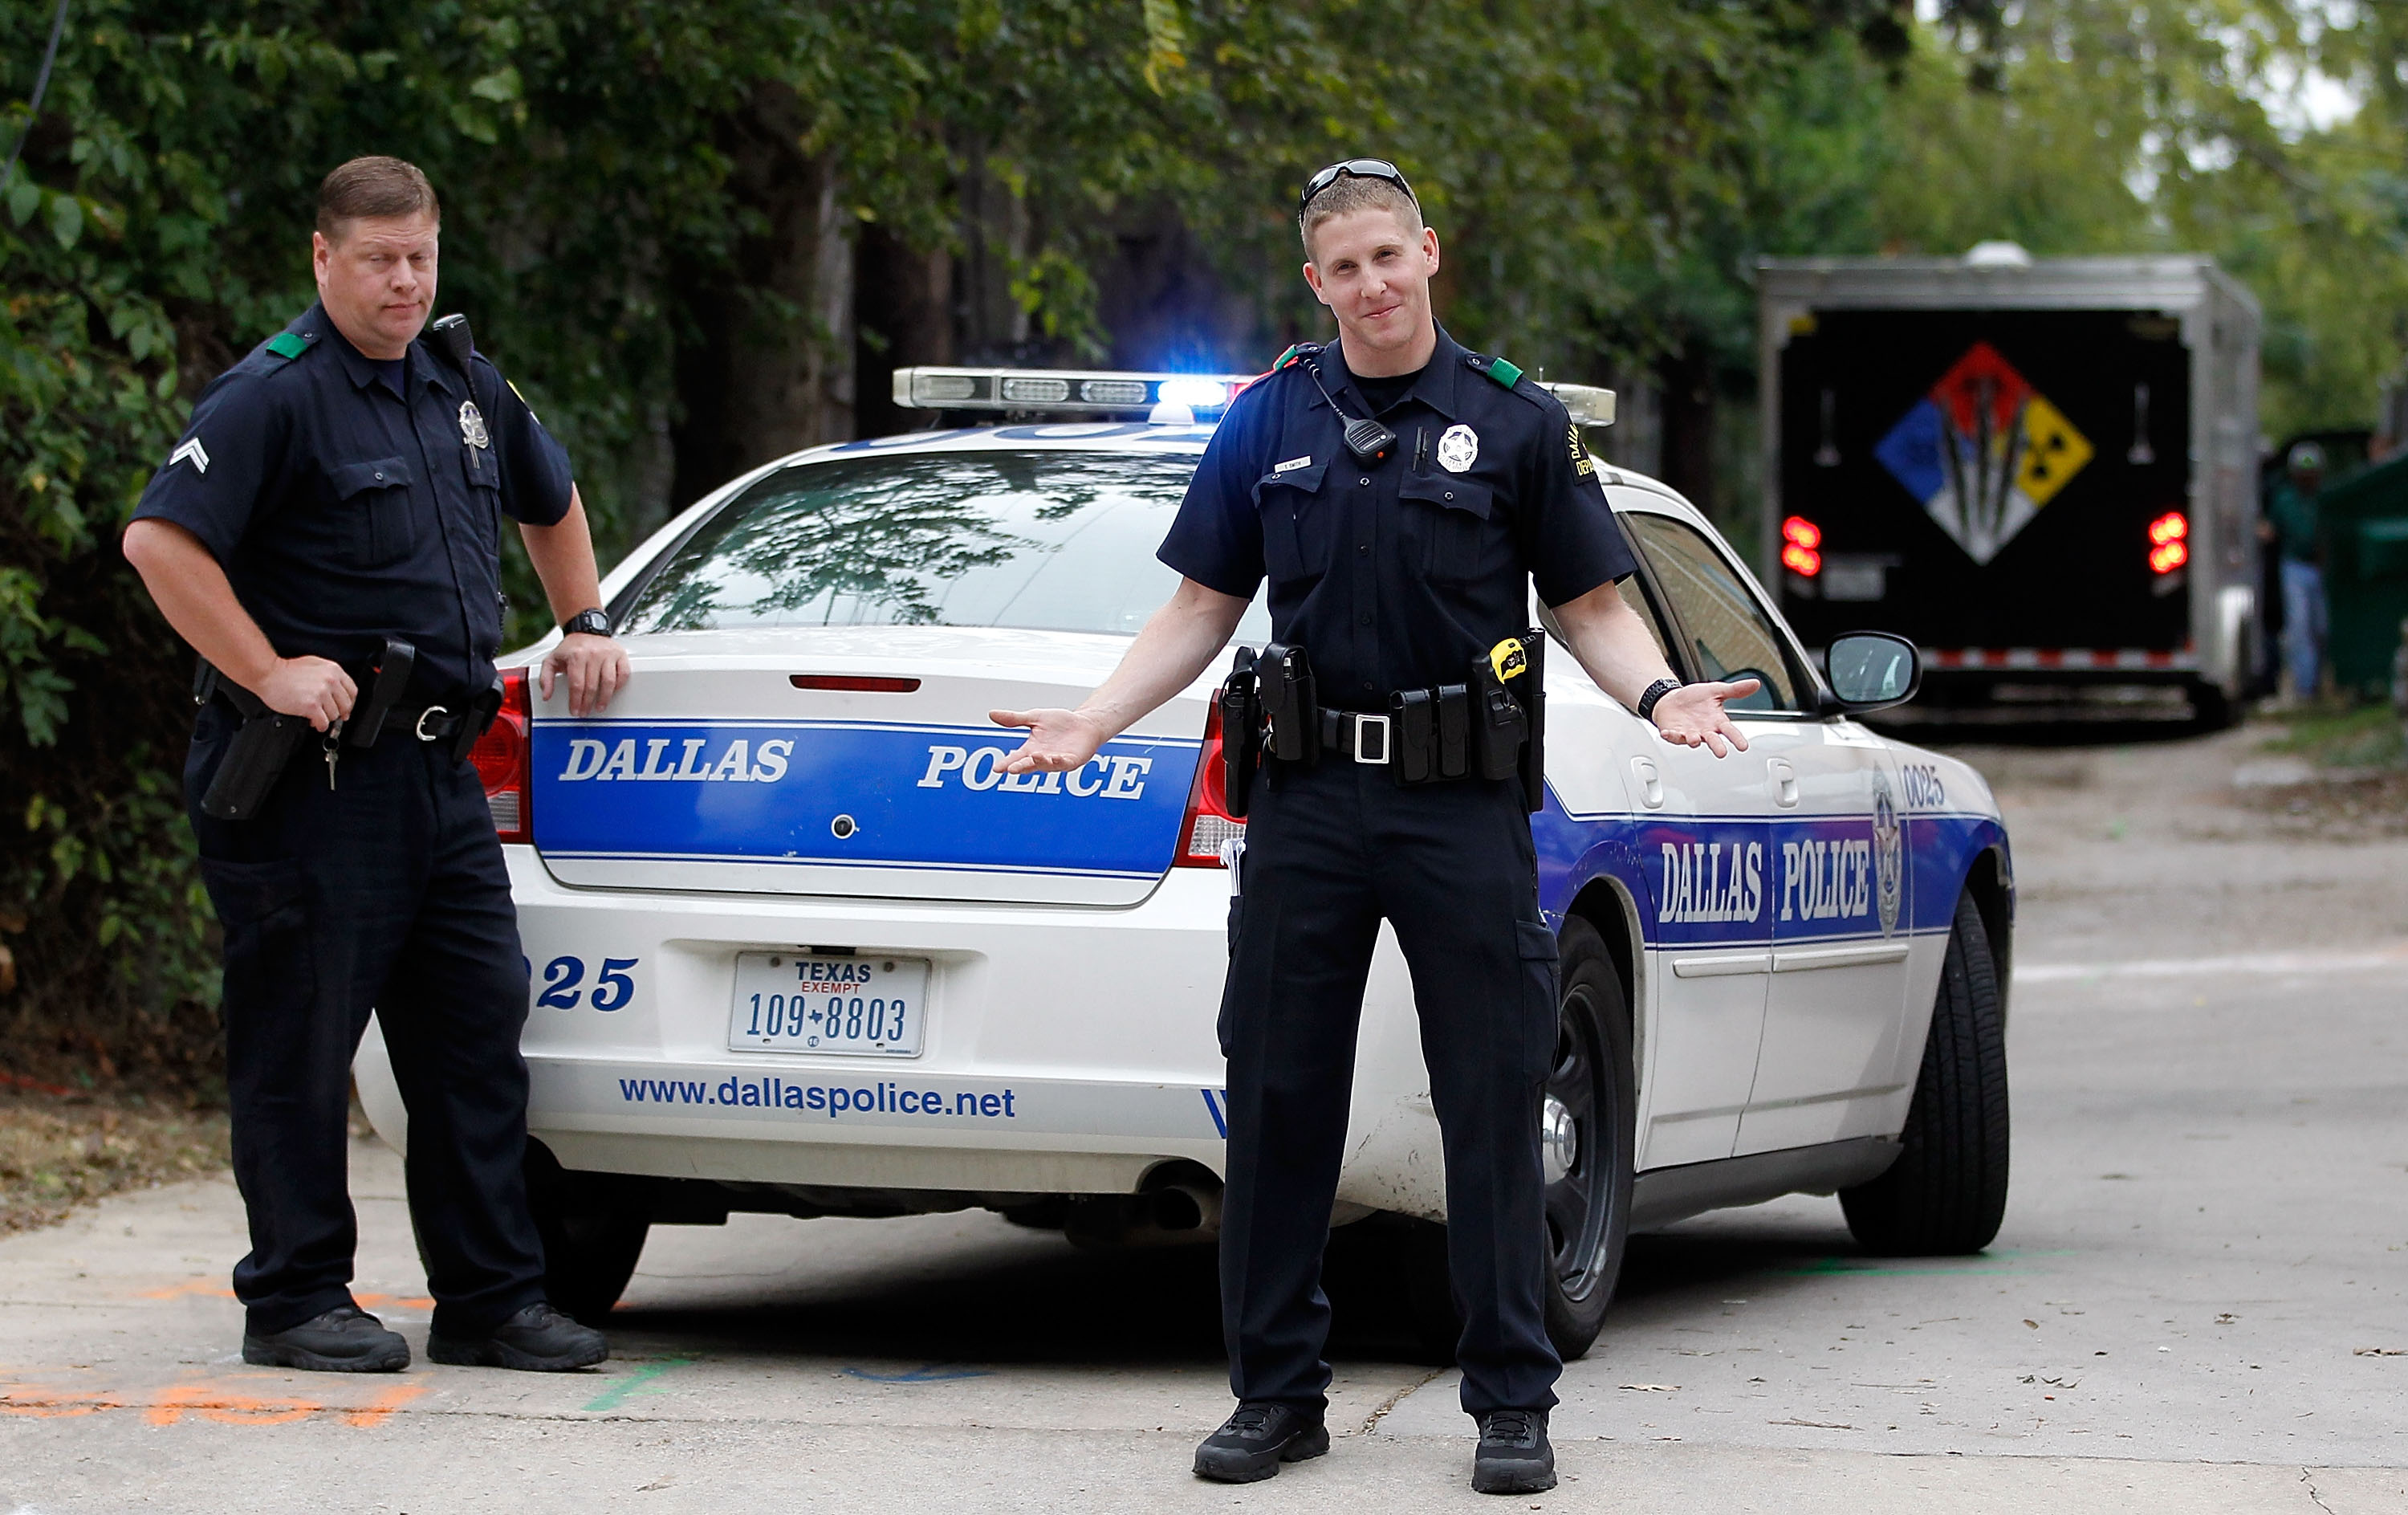 Texas Police Can Collect Debts at Traffic Stops With Credit